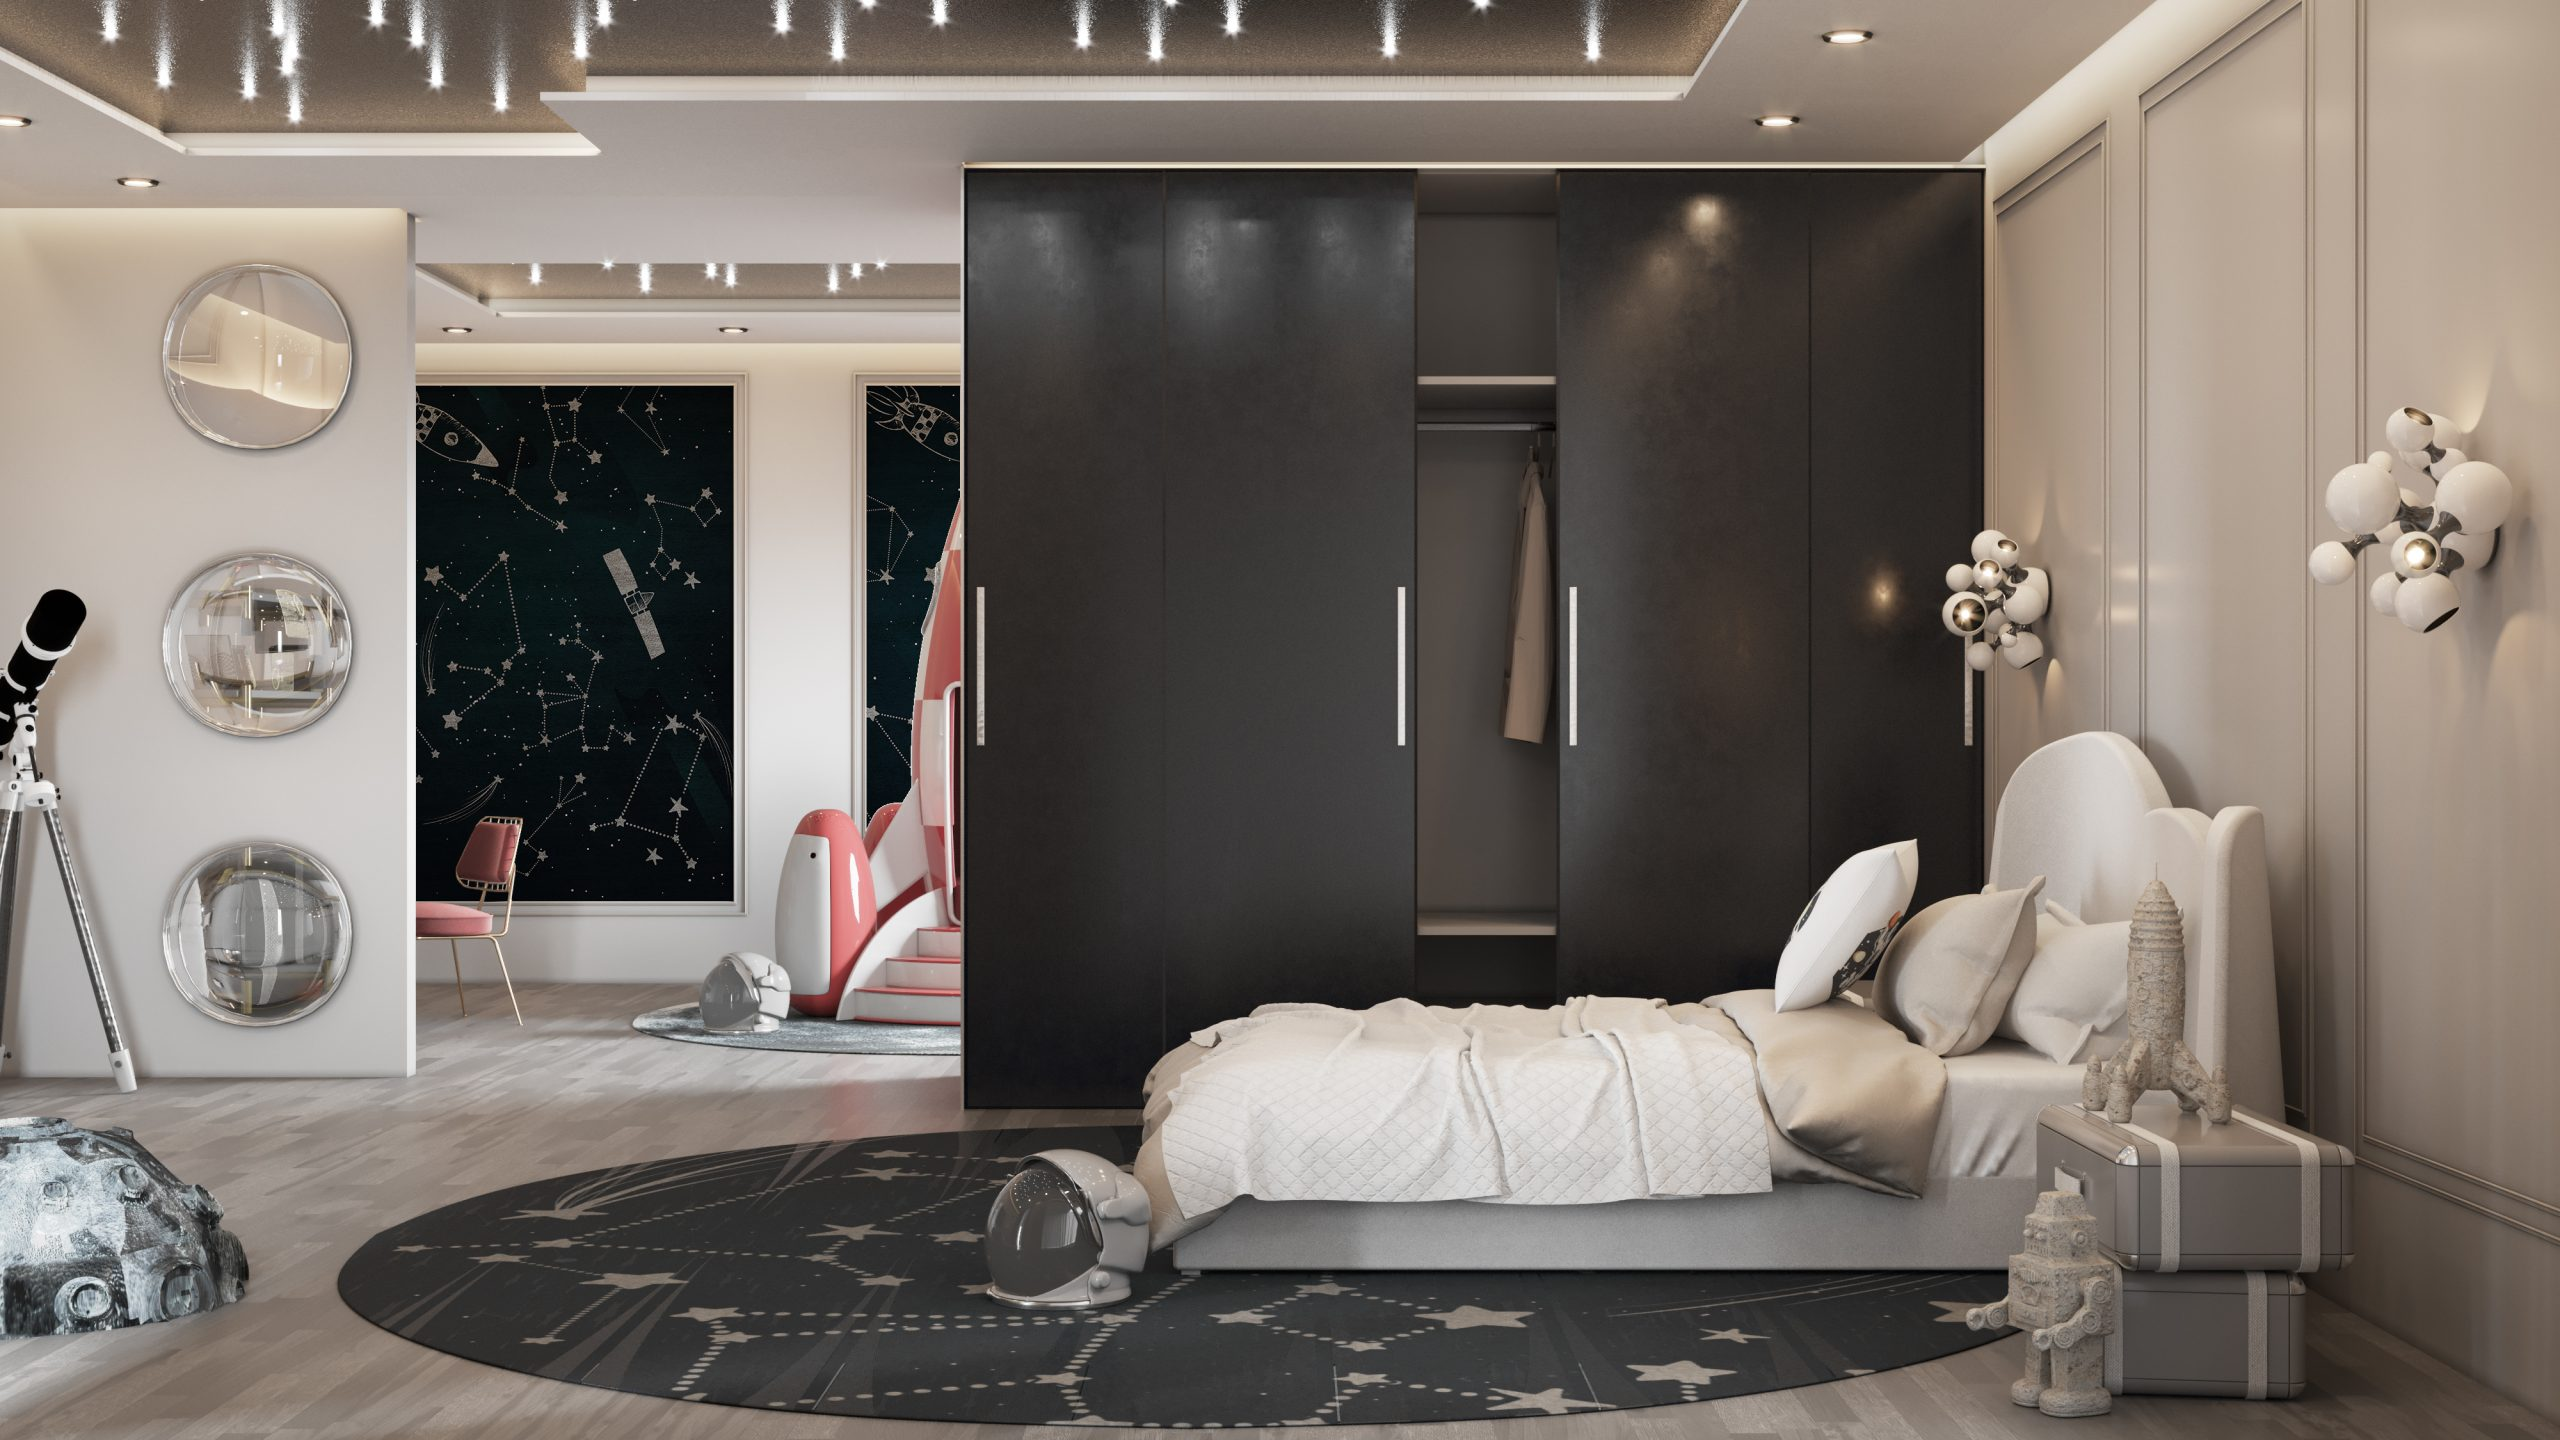 Luxury Space Theme Kids Room and playroom luxury space theme kids room Luxury Space Theme Kids Room: THE STARDOM ROOM CC 02 scaled